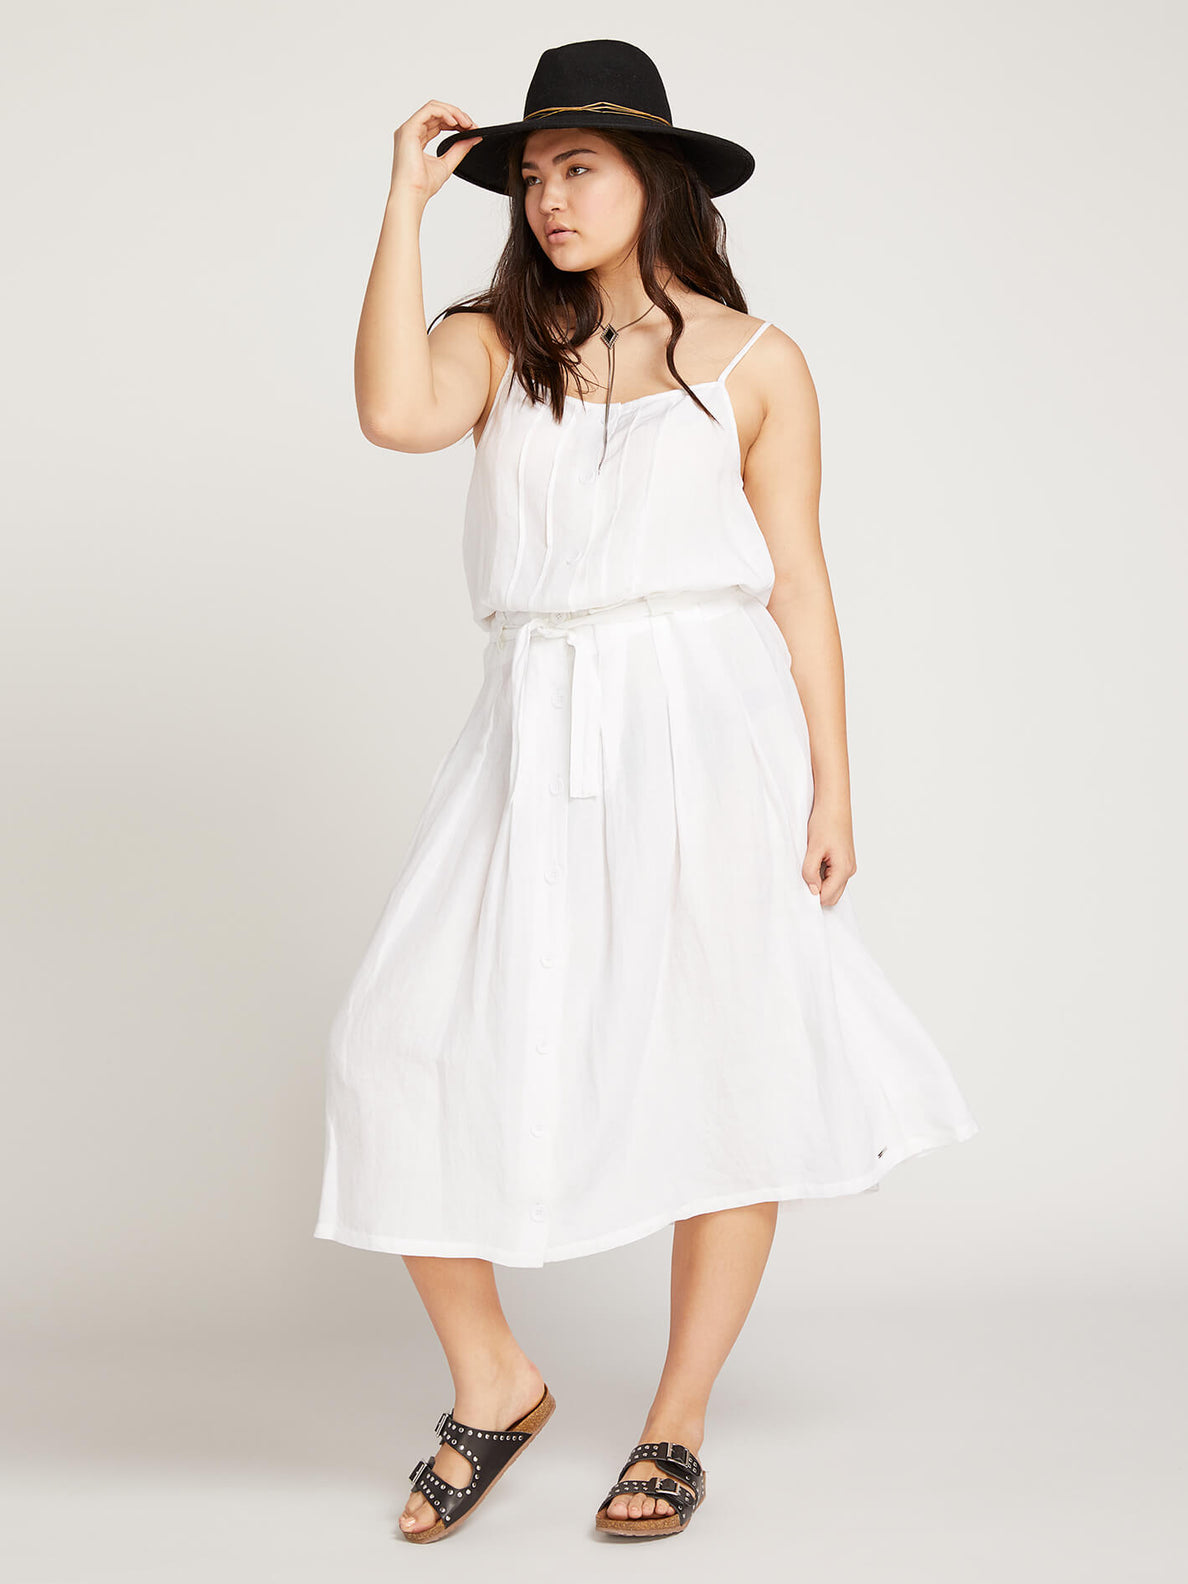 Deep Tracks Skirt In White, Front Extended Size View